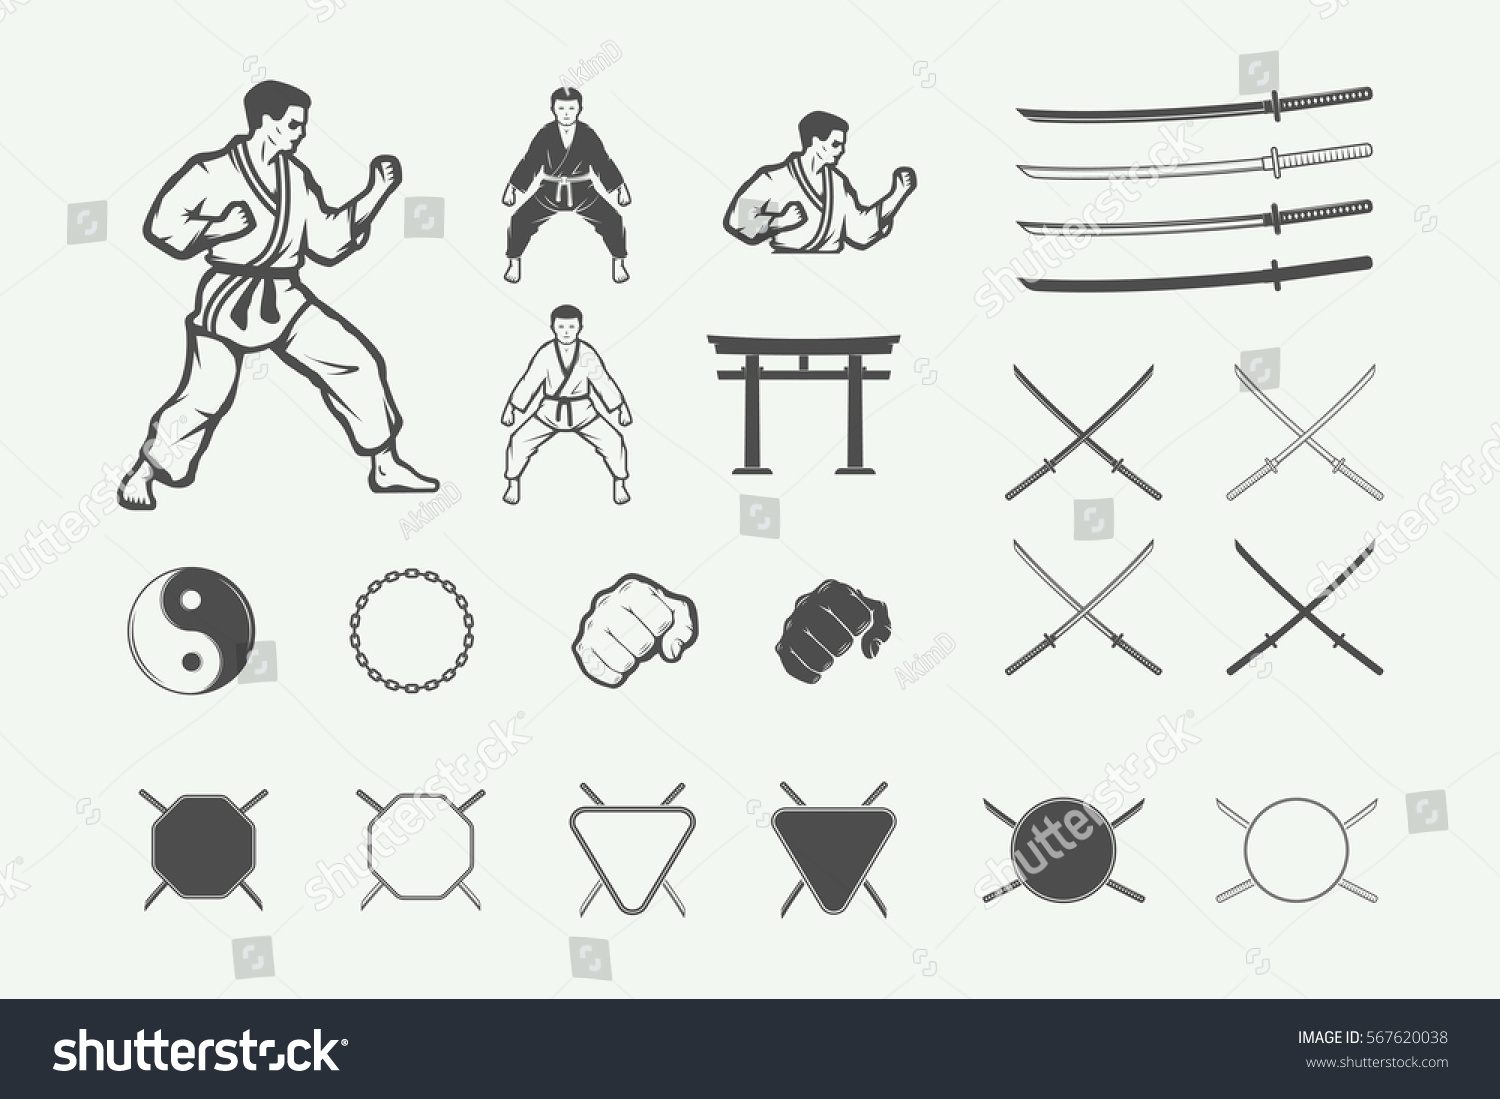 Types of martial arts: a selection of sites